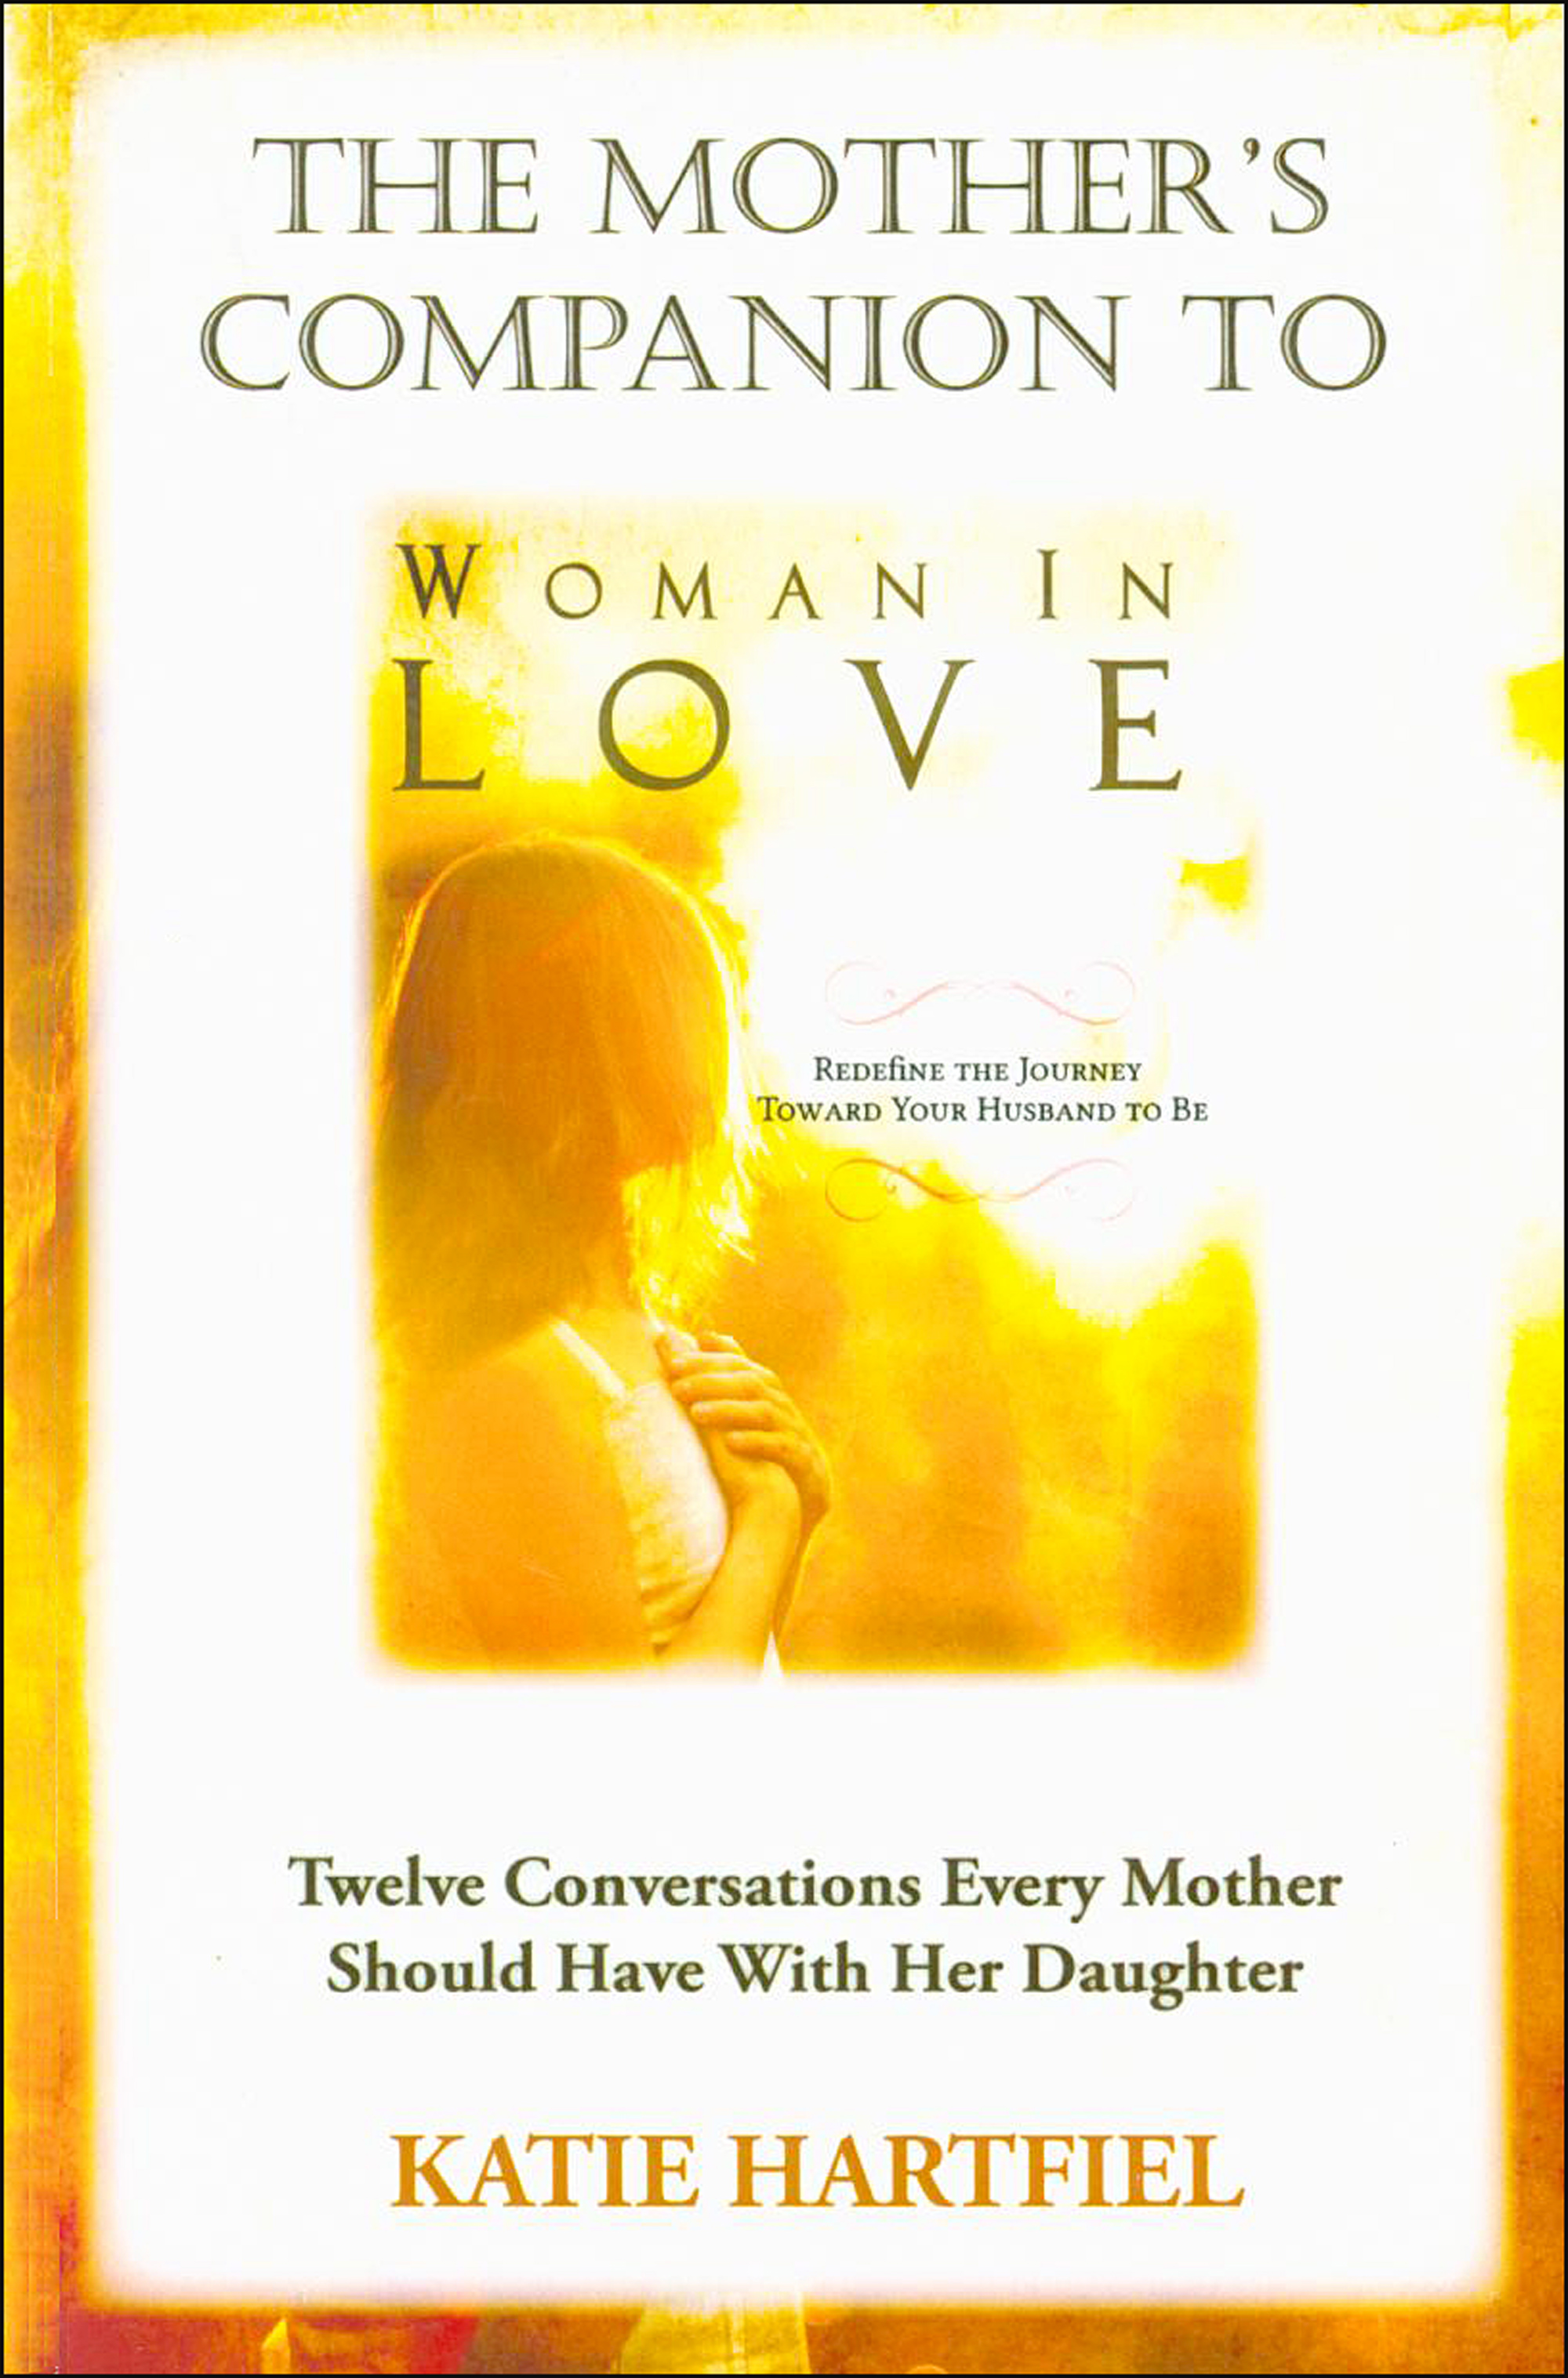 Woman in Love: The Mother's Companion to Woman in Love